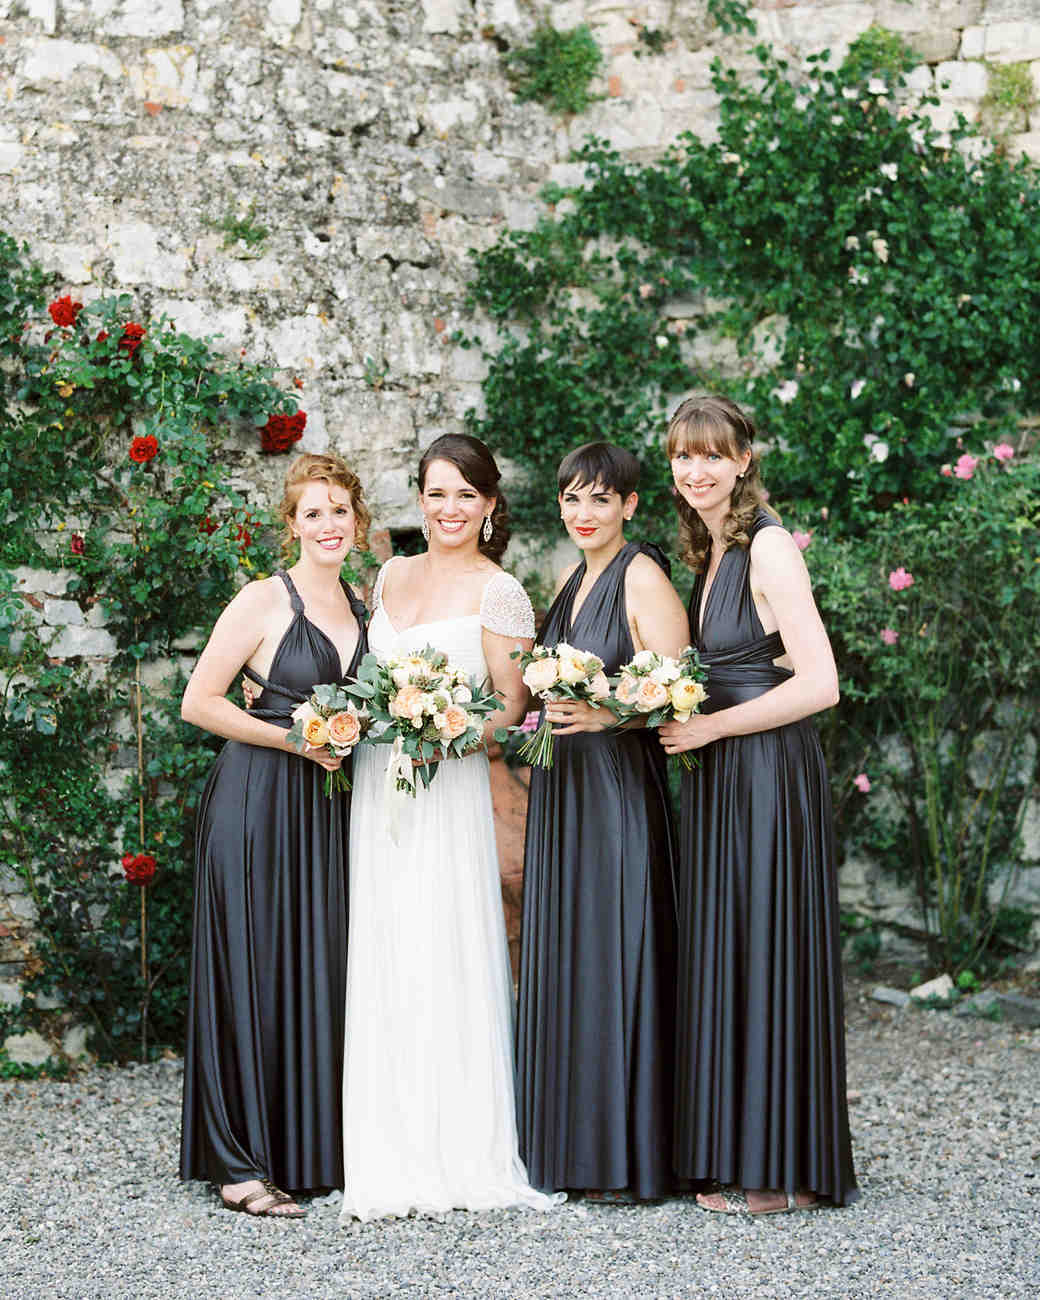 lauren-ollie-wedding-bridesmaids-450-s111895-0515.jpg